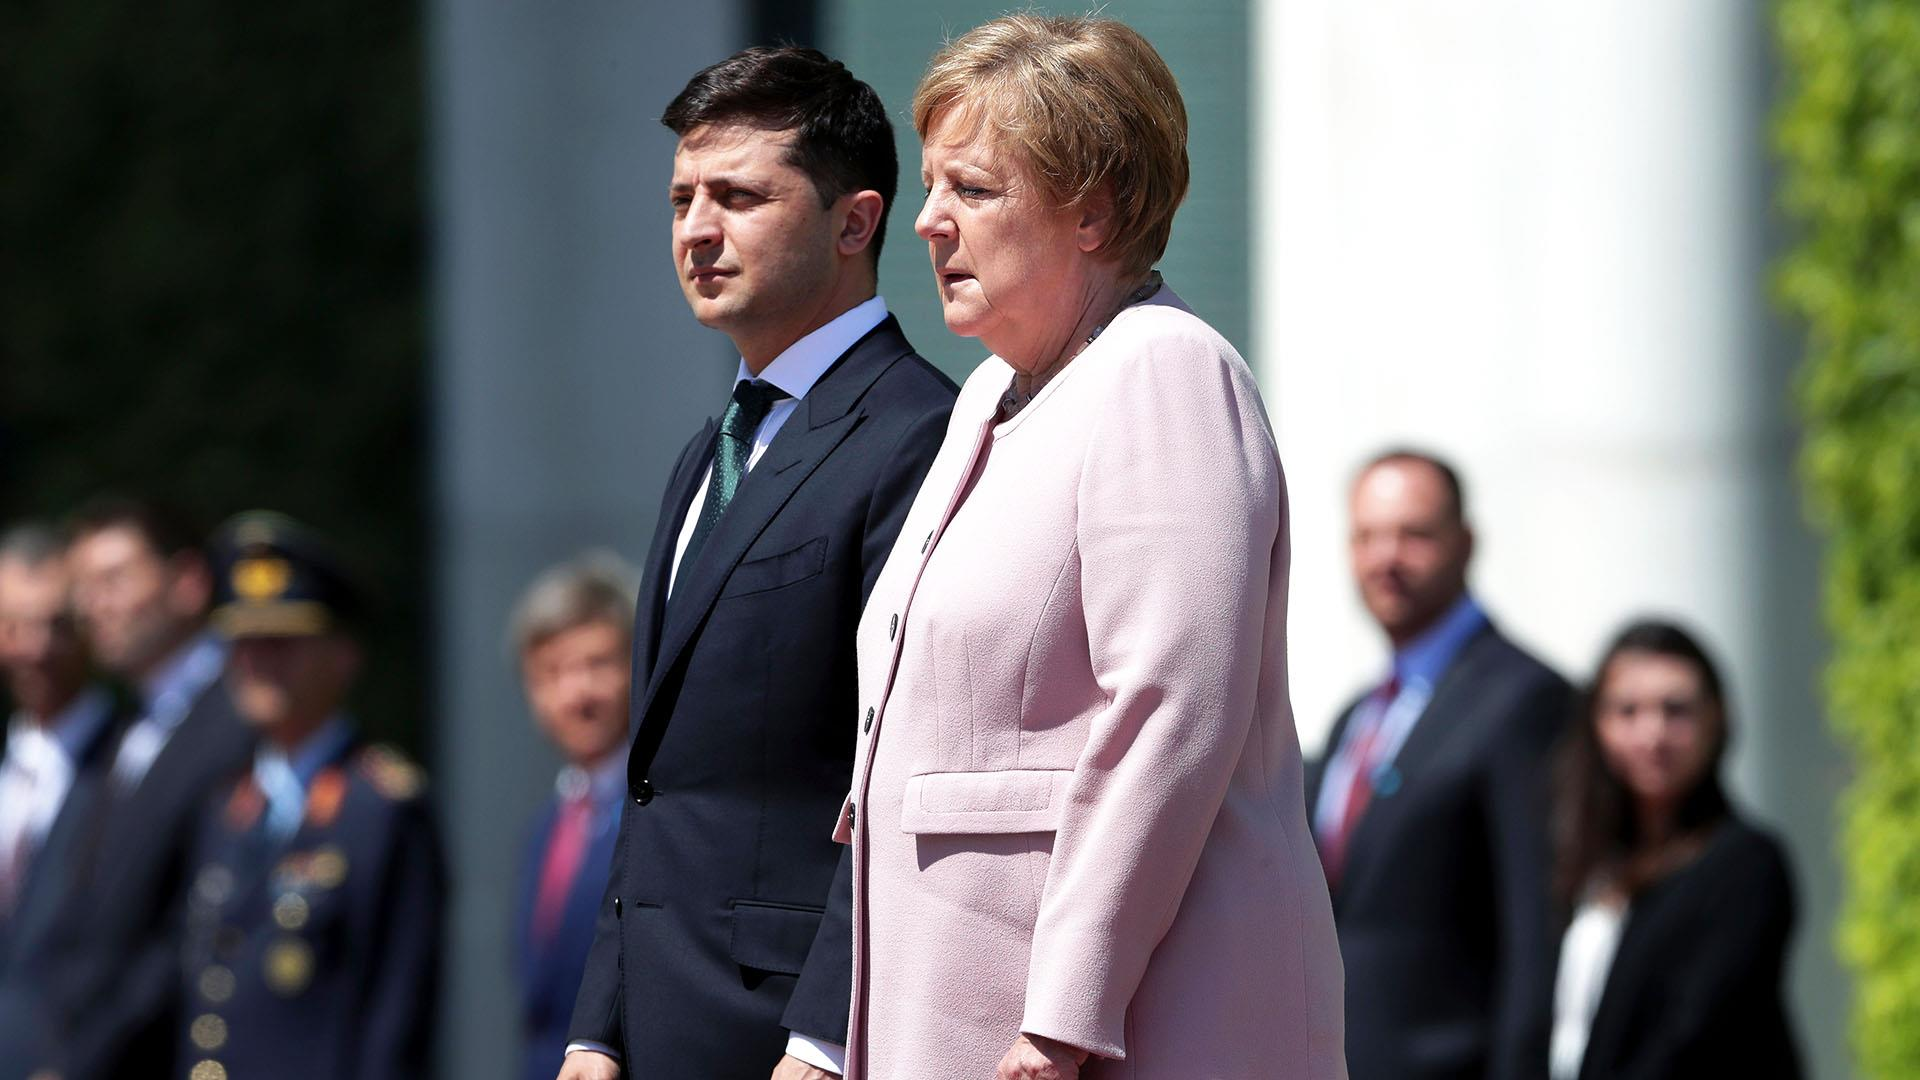 German Chancellor Angela Merkel shaking uncontrollably, looking unwell at Berlin ceremony